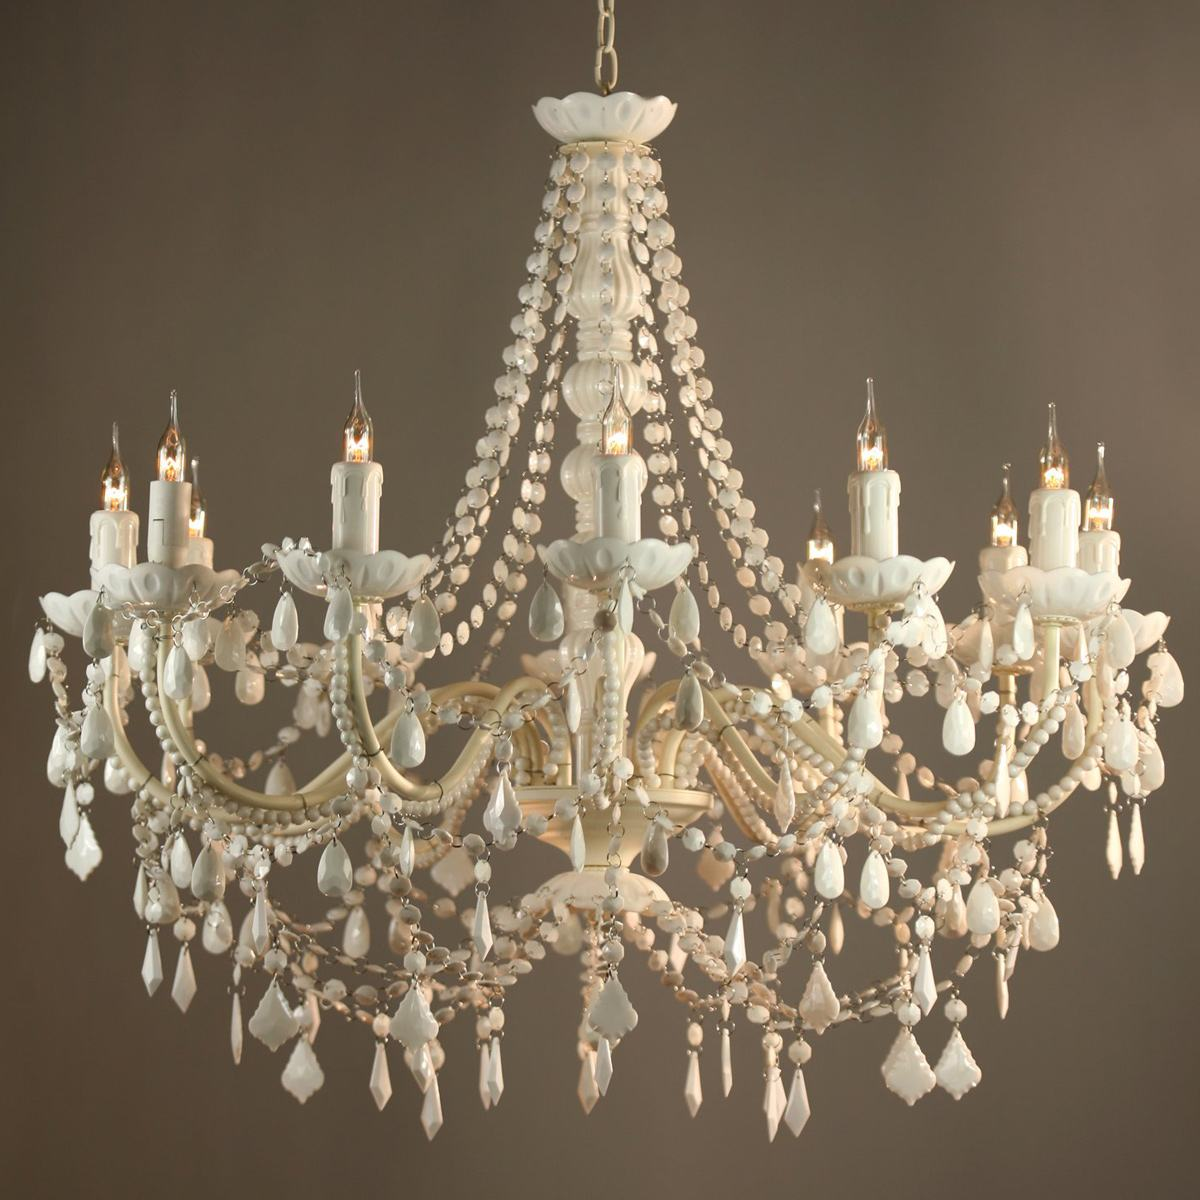 FIFI FRENCH VINTAGE STYLE WHITE & IVORY 12 ARM ACRYLIC CHANDELIER